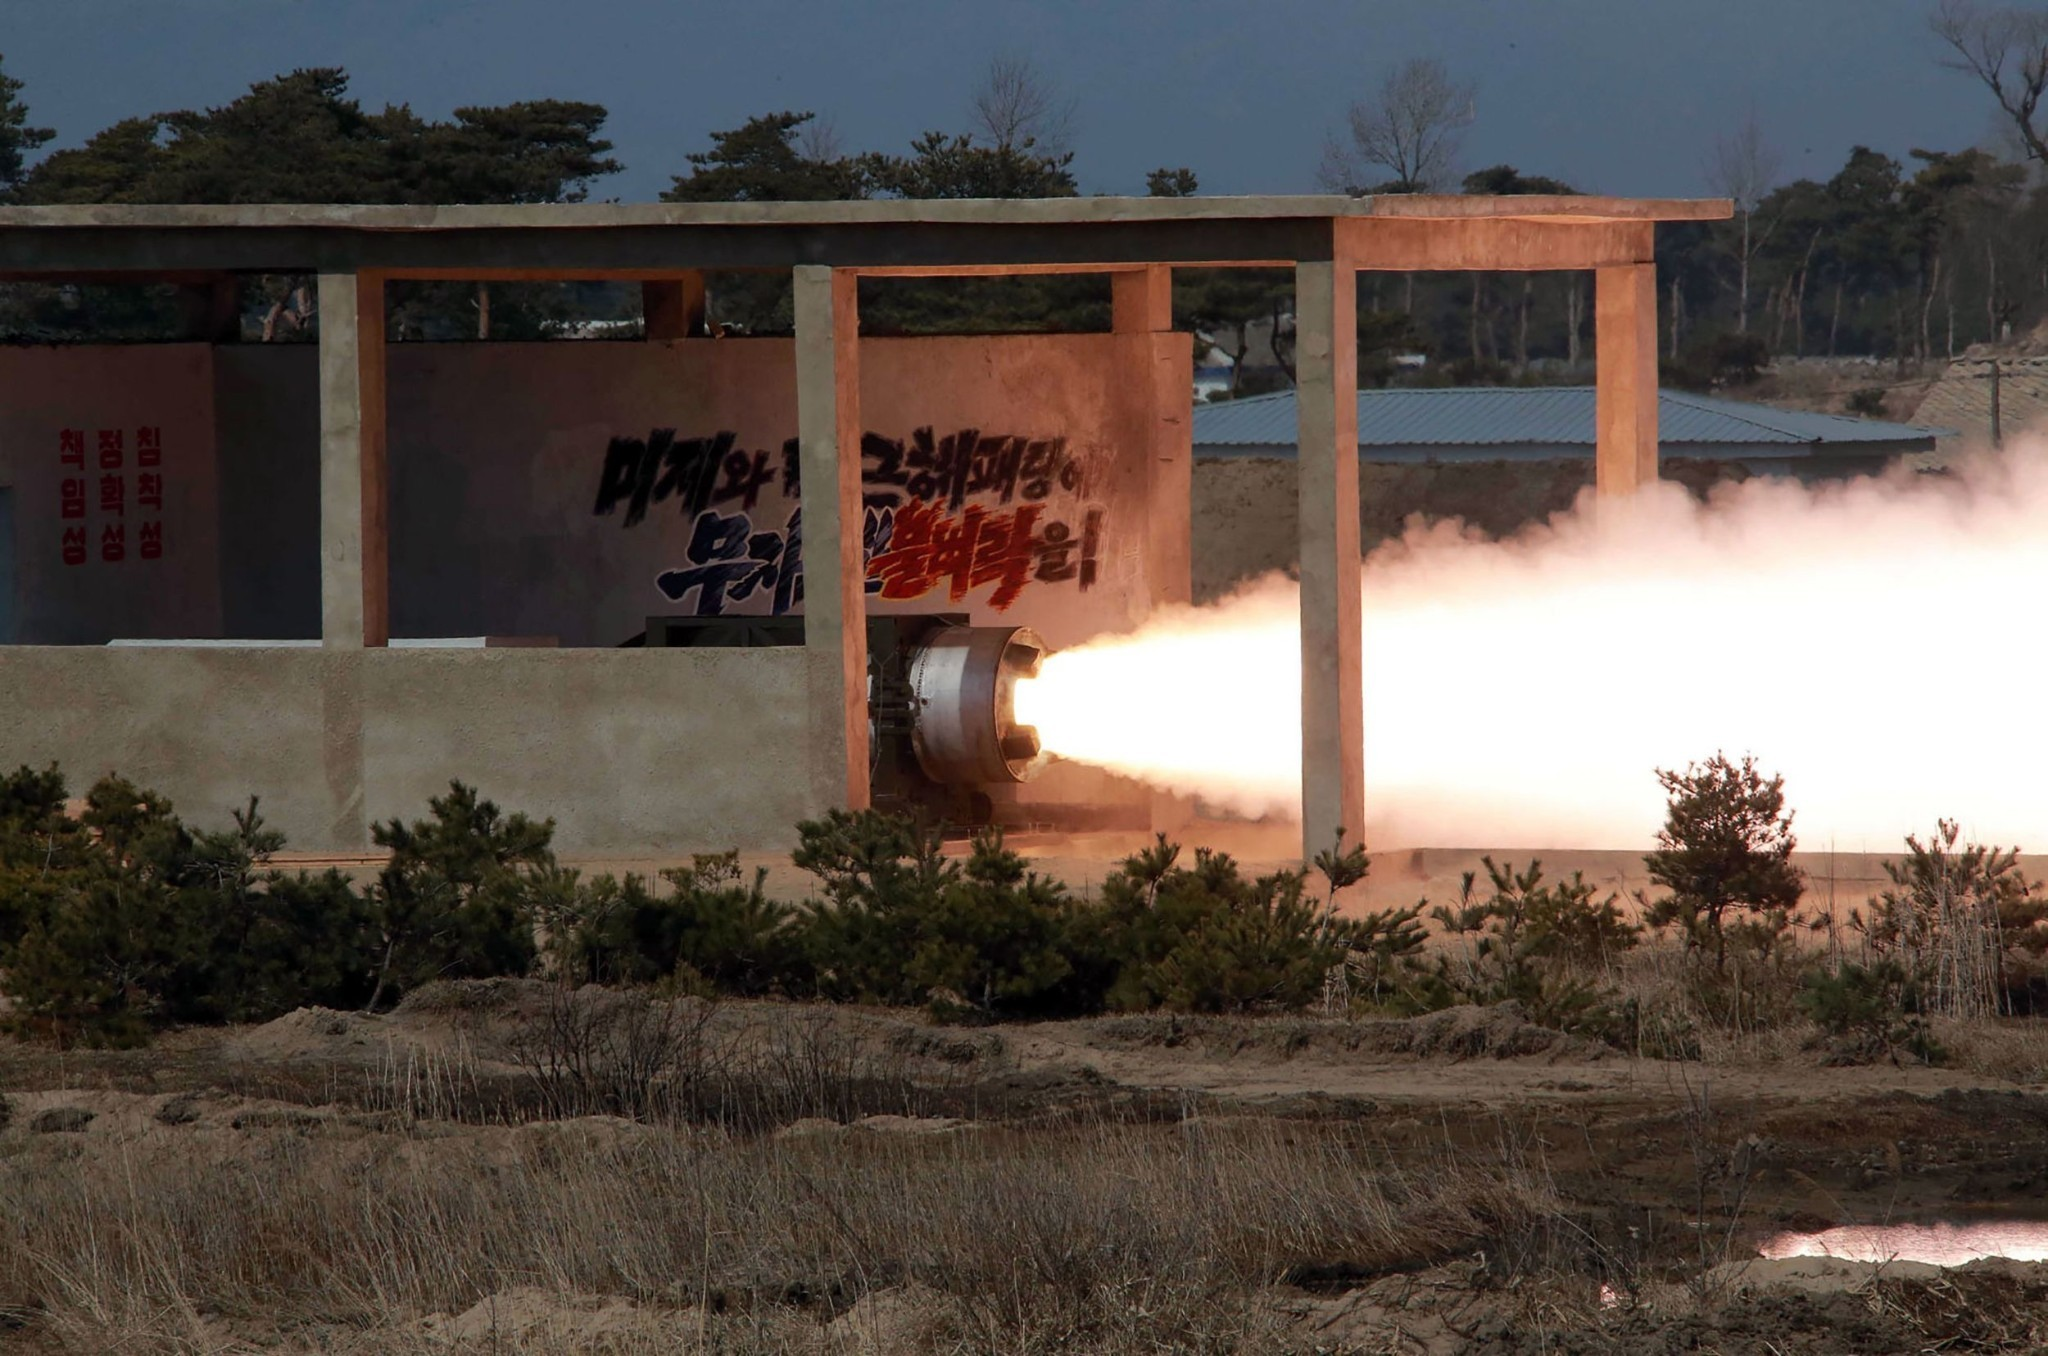 North Korea claims it tested solid-fuel rocket, a big step in nuclear arms program